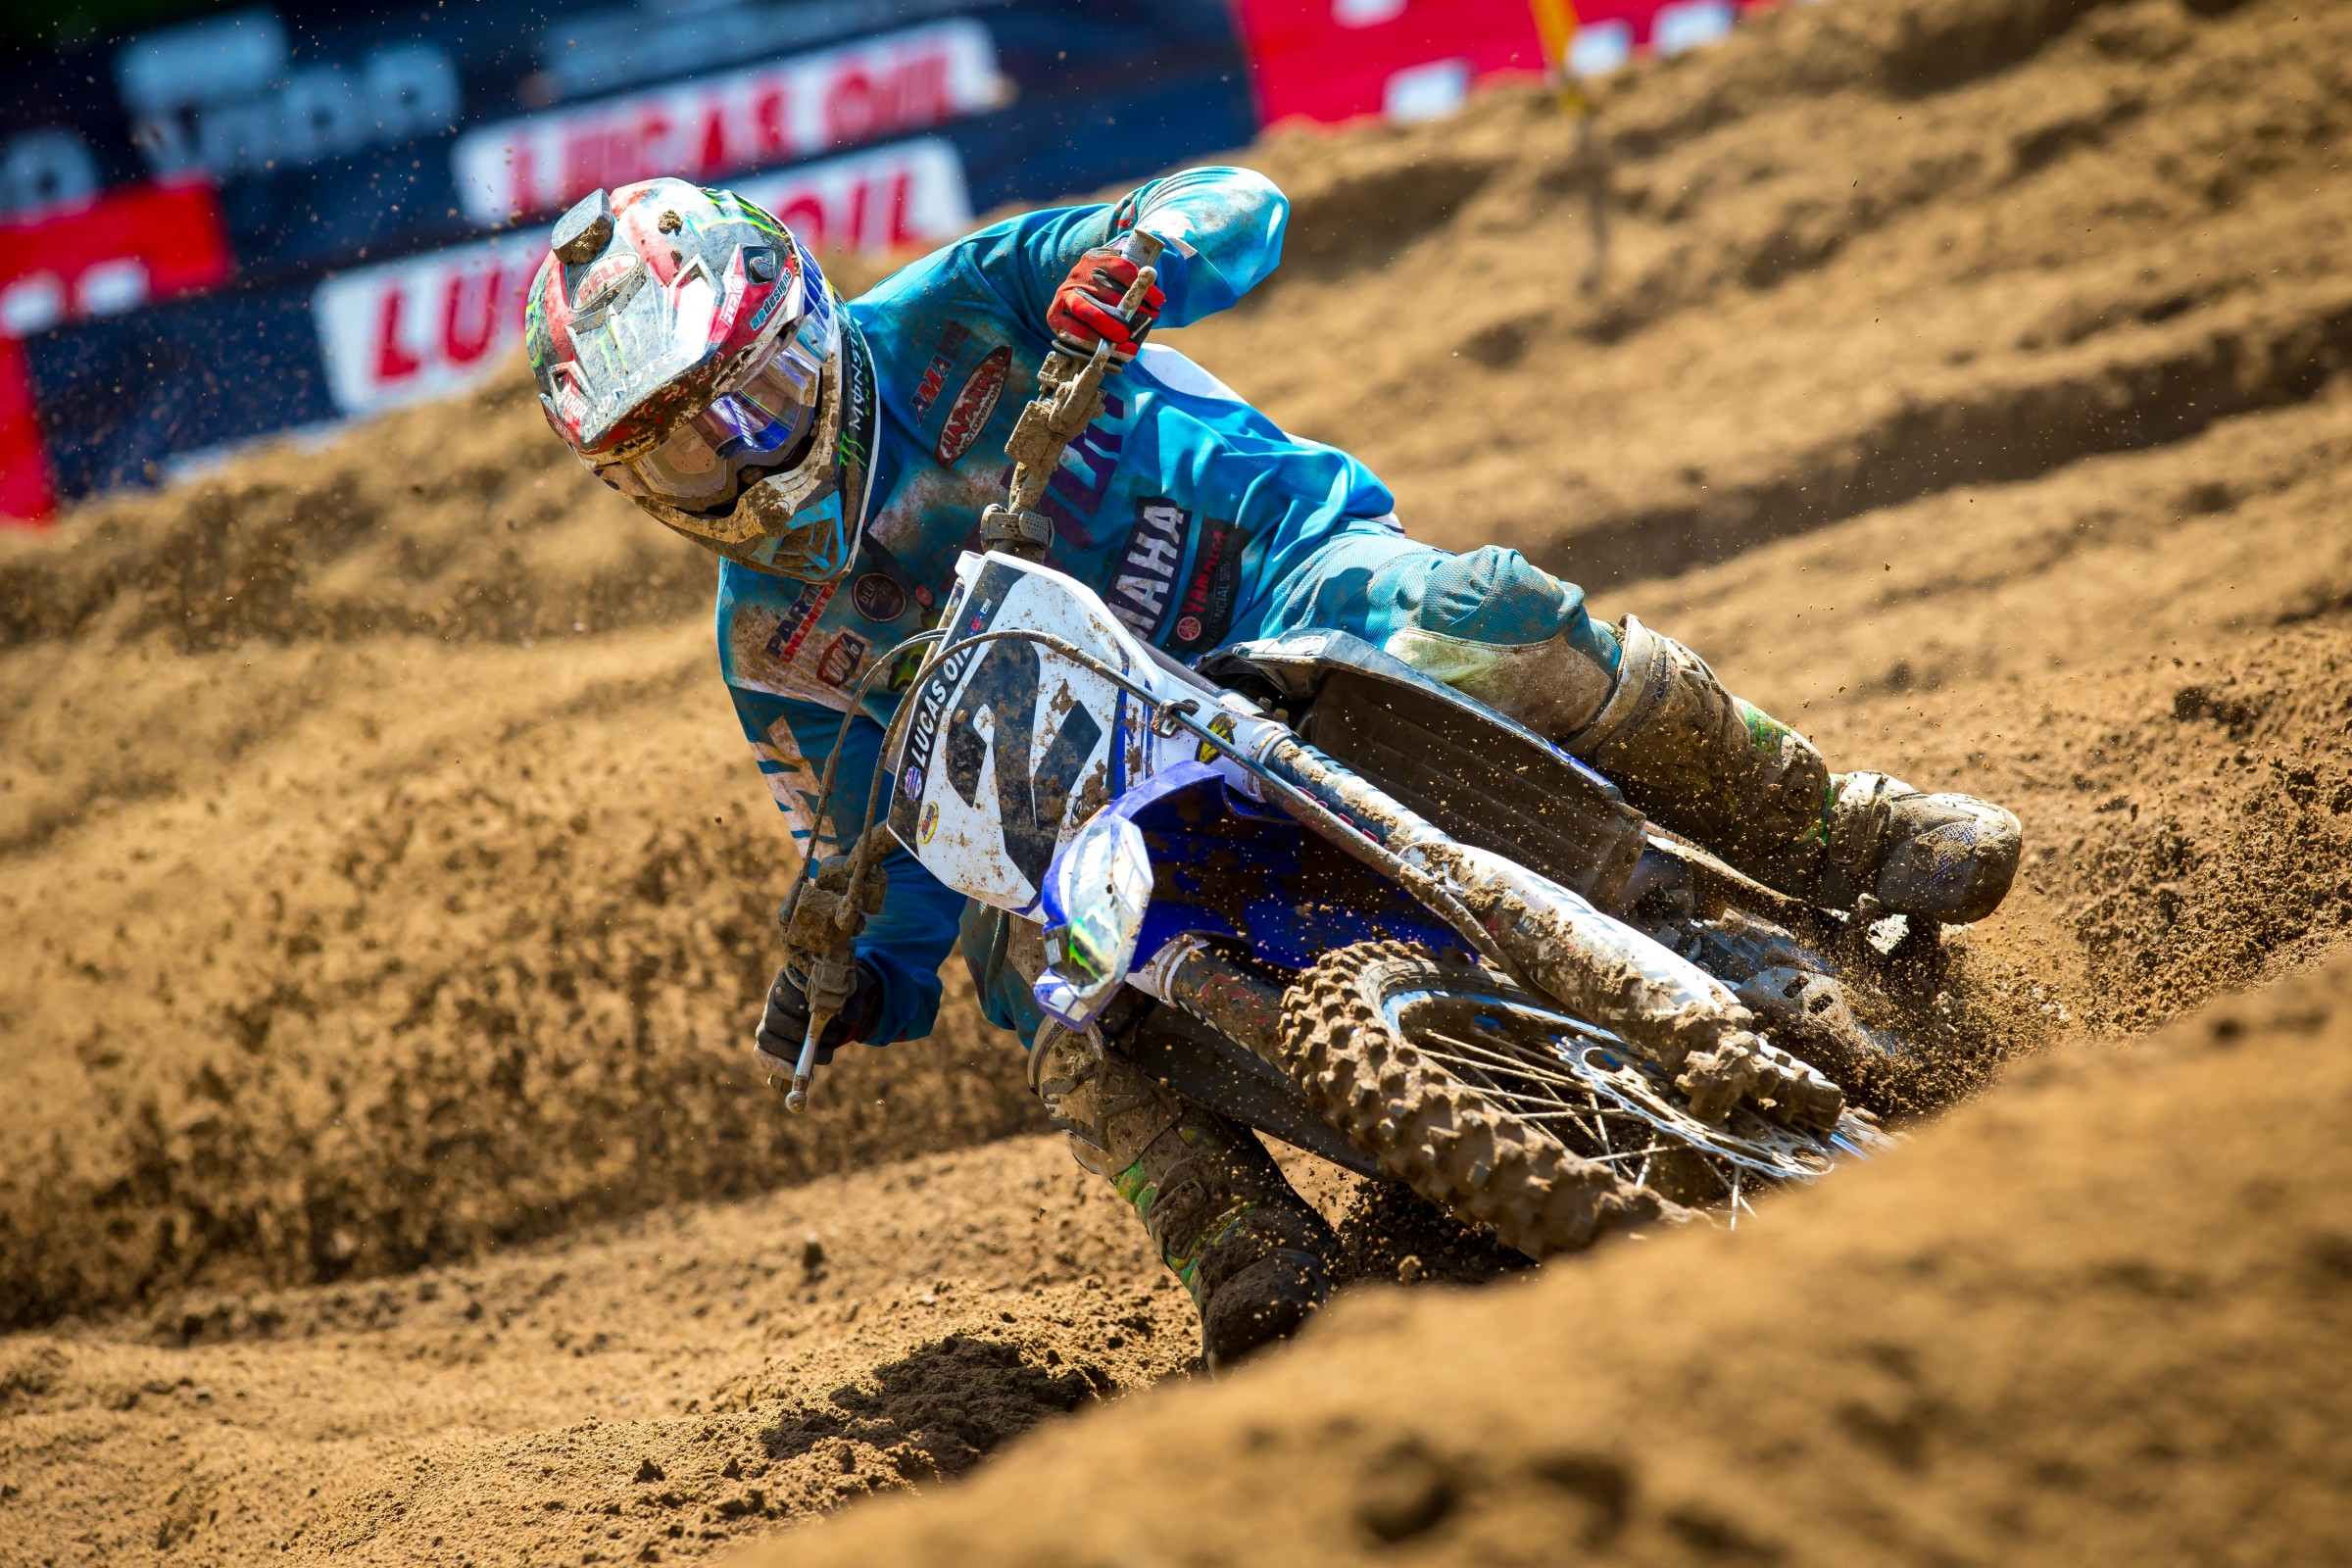 Webb was getting his summer back on track before he injured his knee, going 3-6-4-9 in his last four motos.